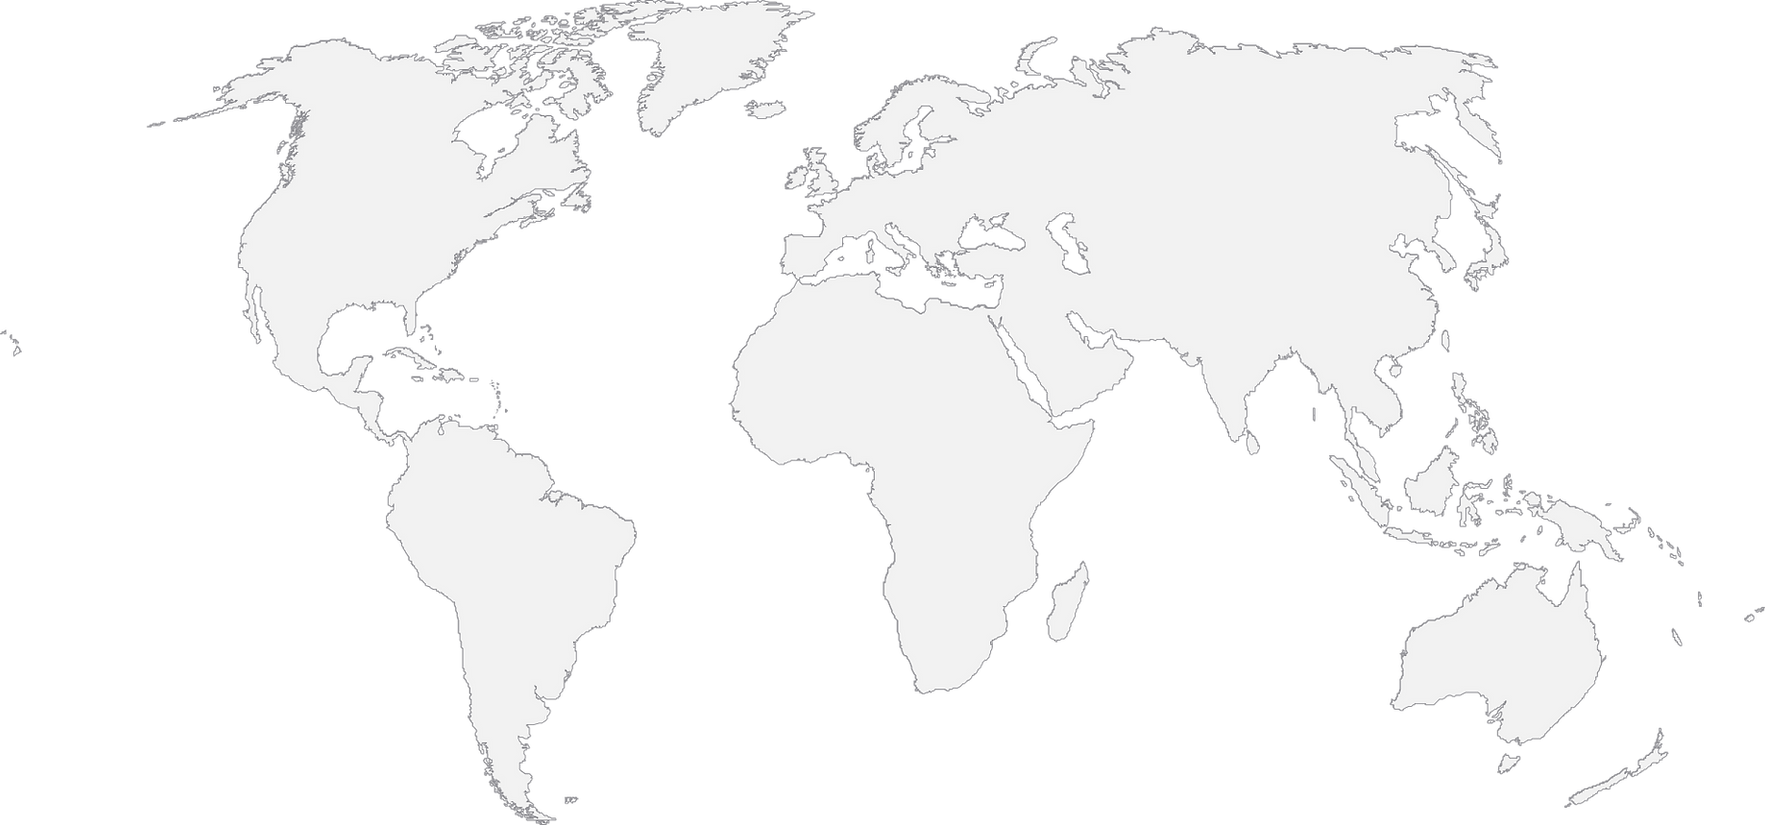 ezhealth world coverage 3.png